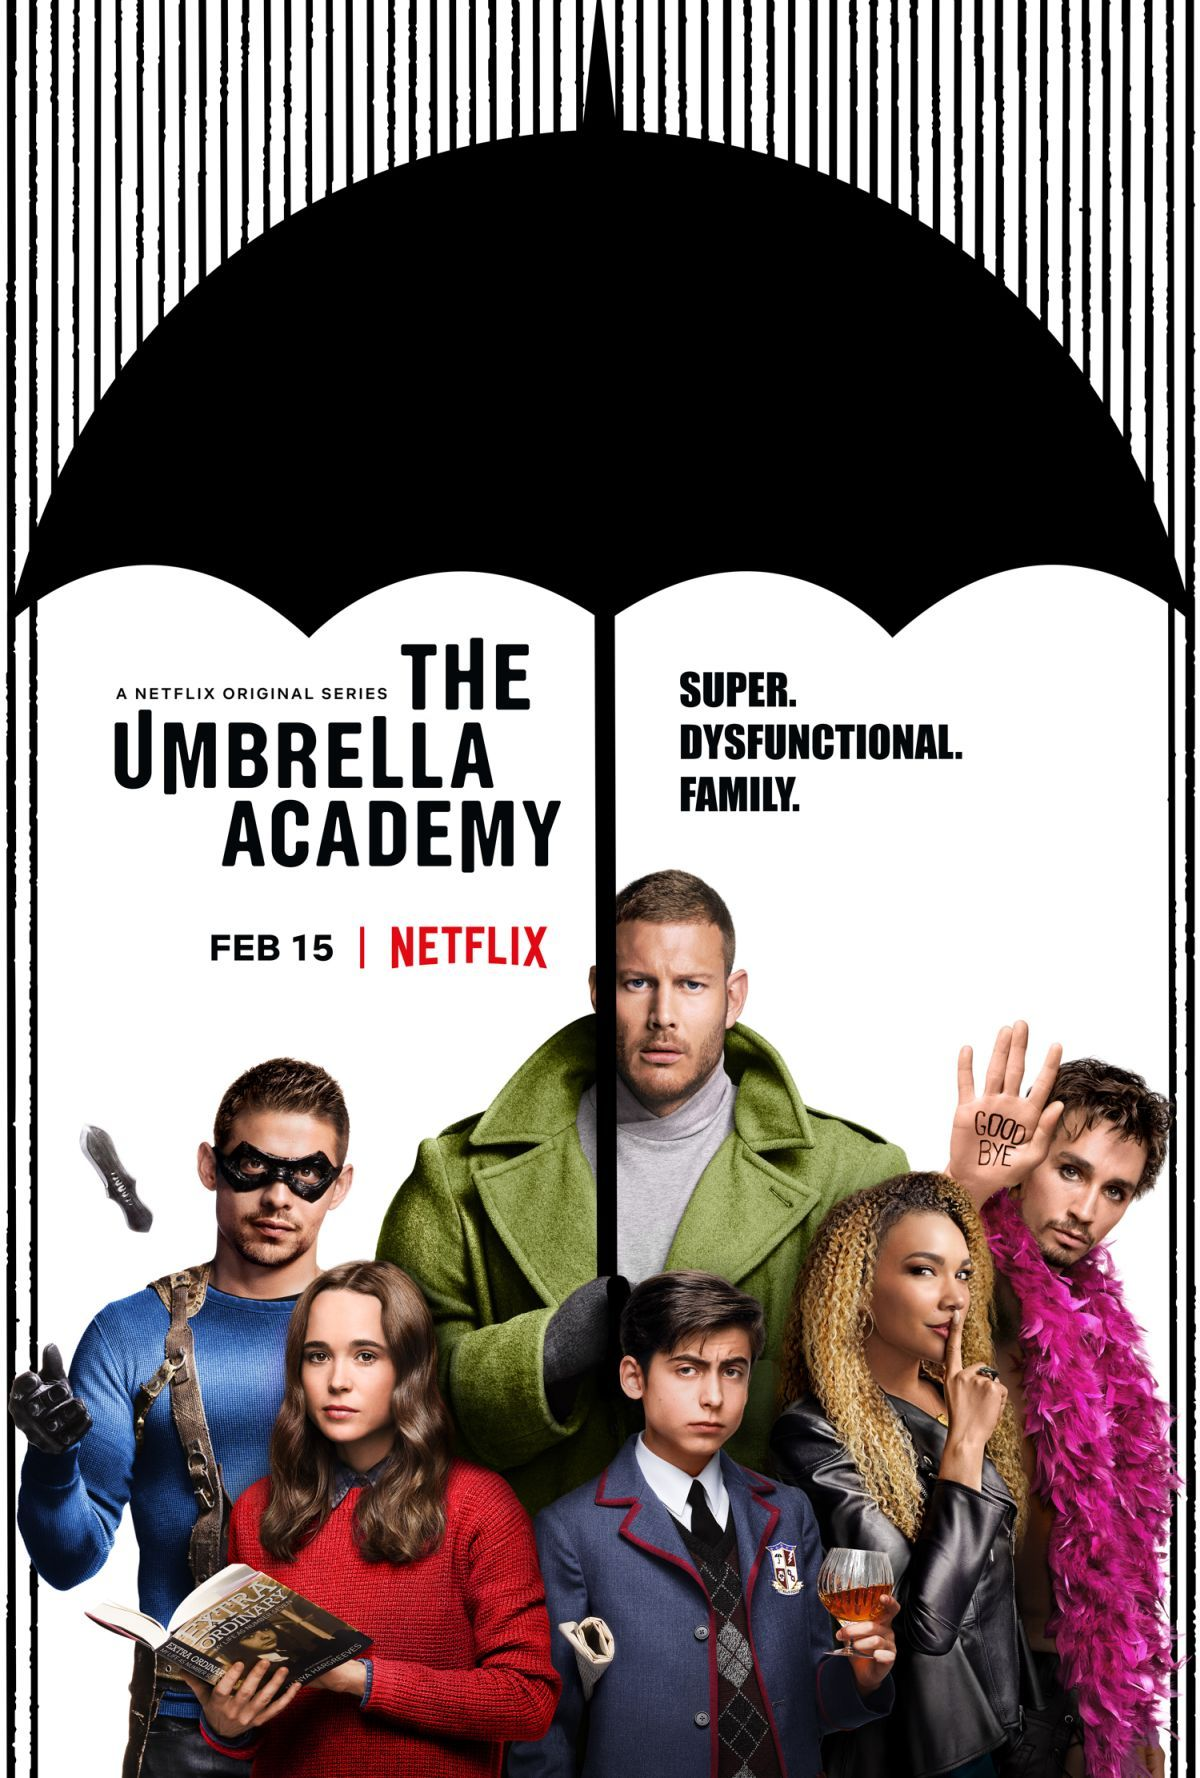 The Umbrella Academy S01 E08 Cut